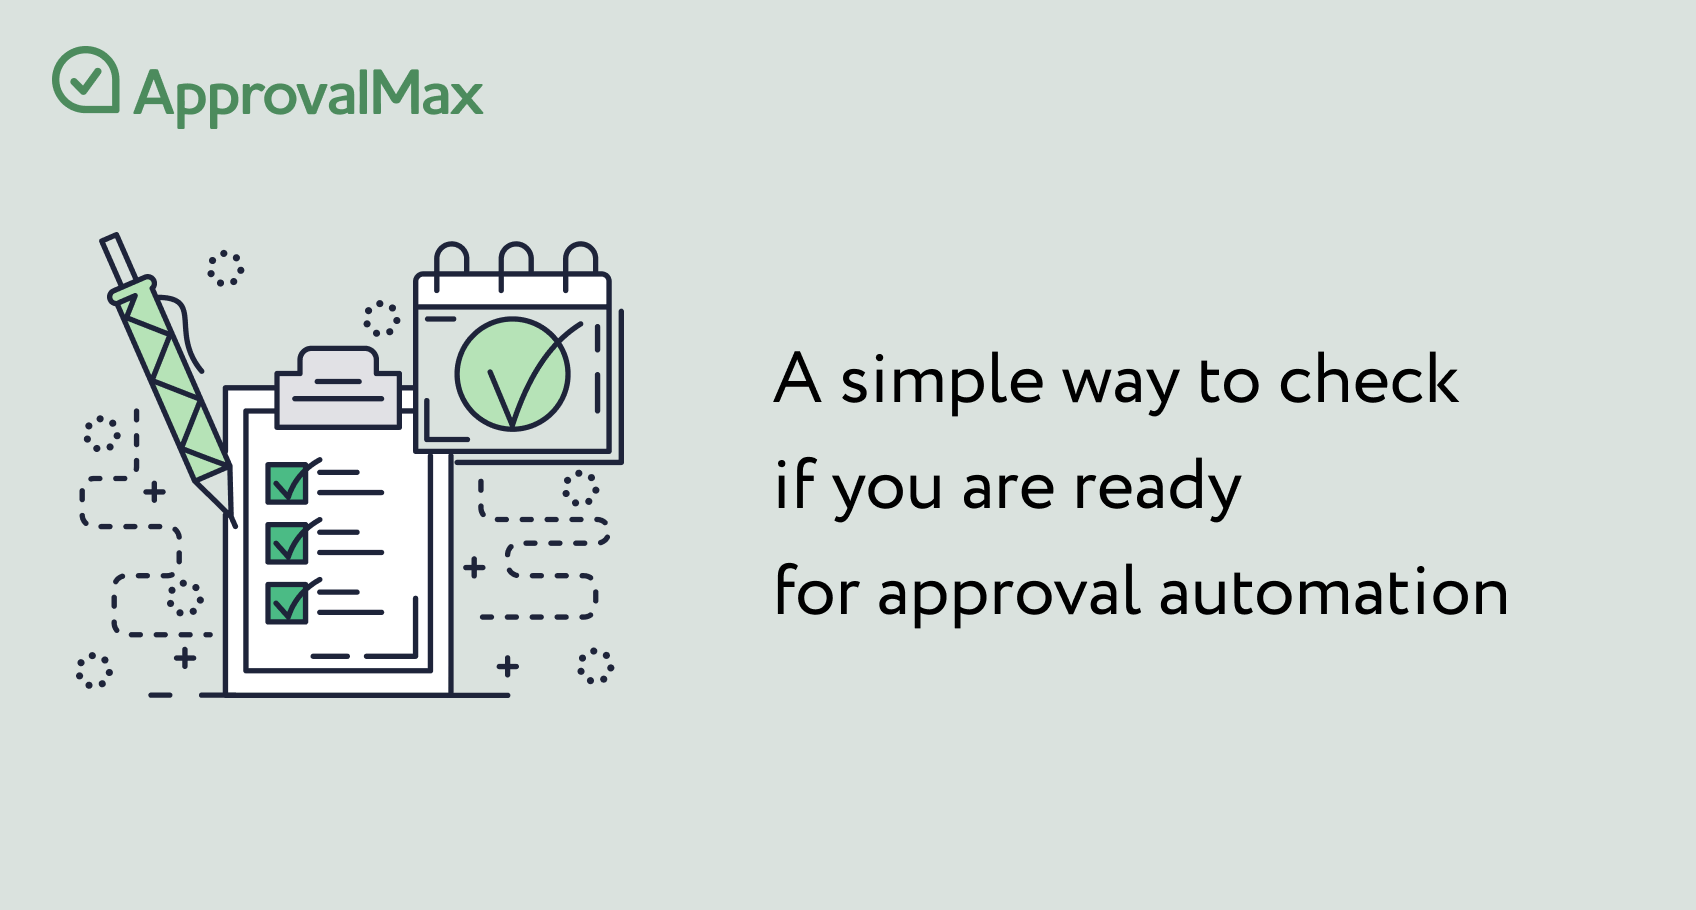 Checklist: It's high time for approval automation if…